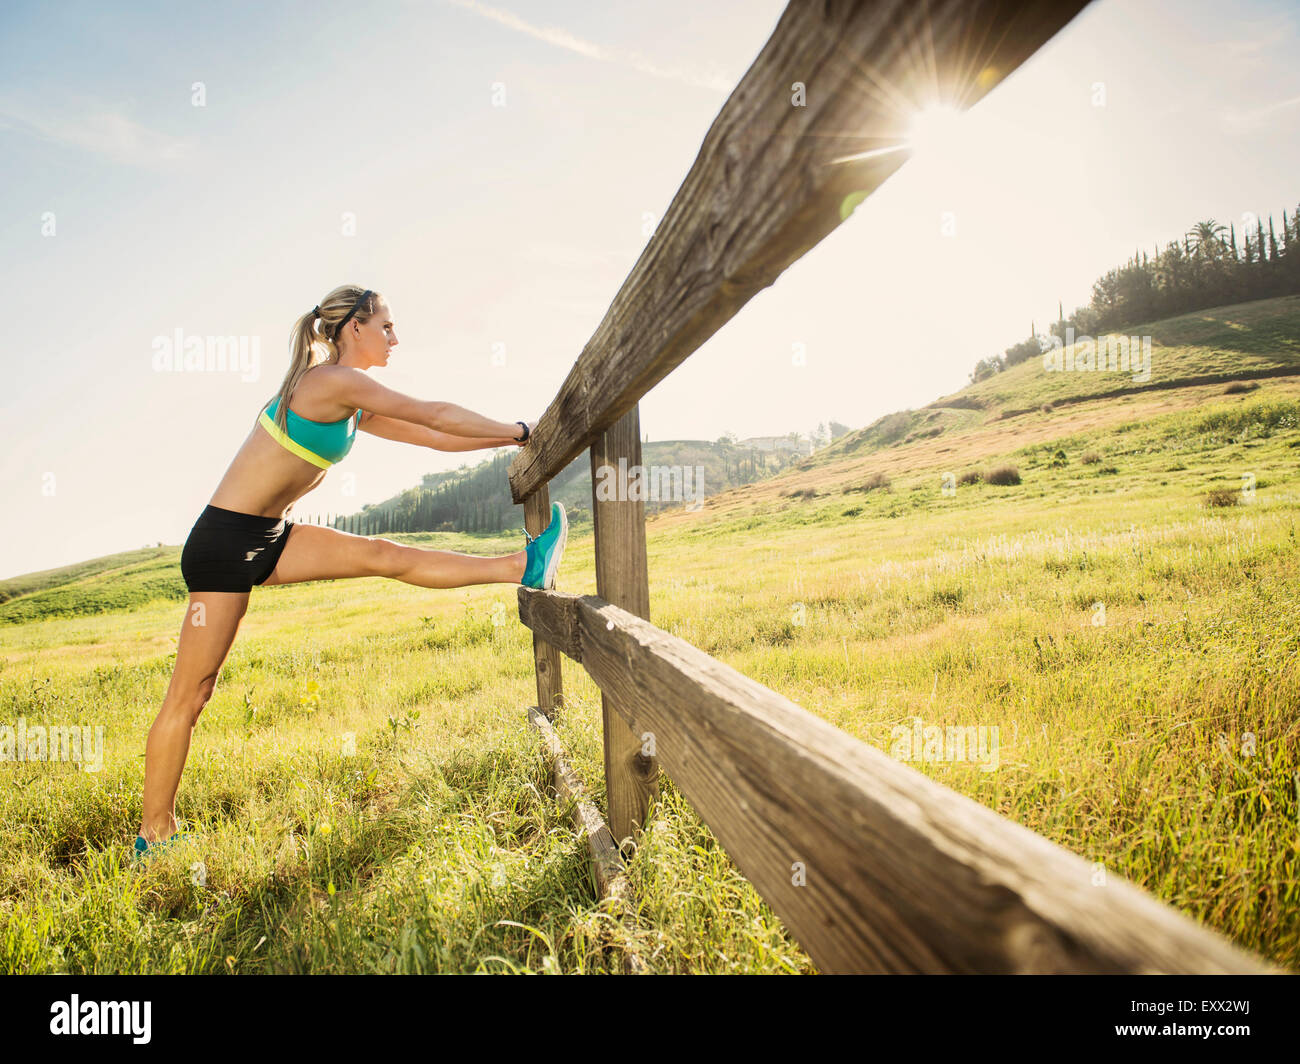 Woman stretching outdoors - Stock Image